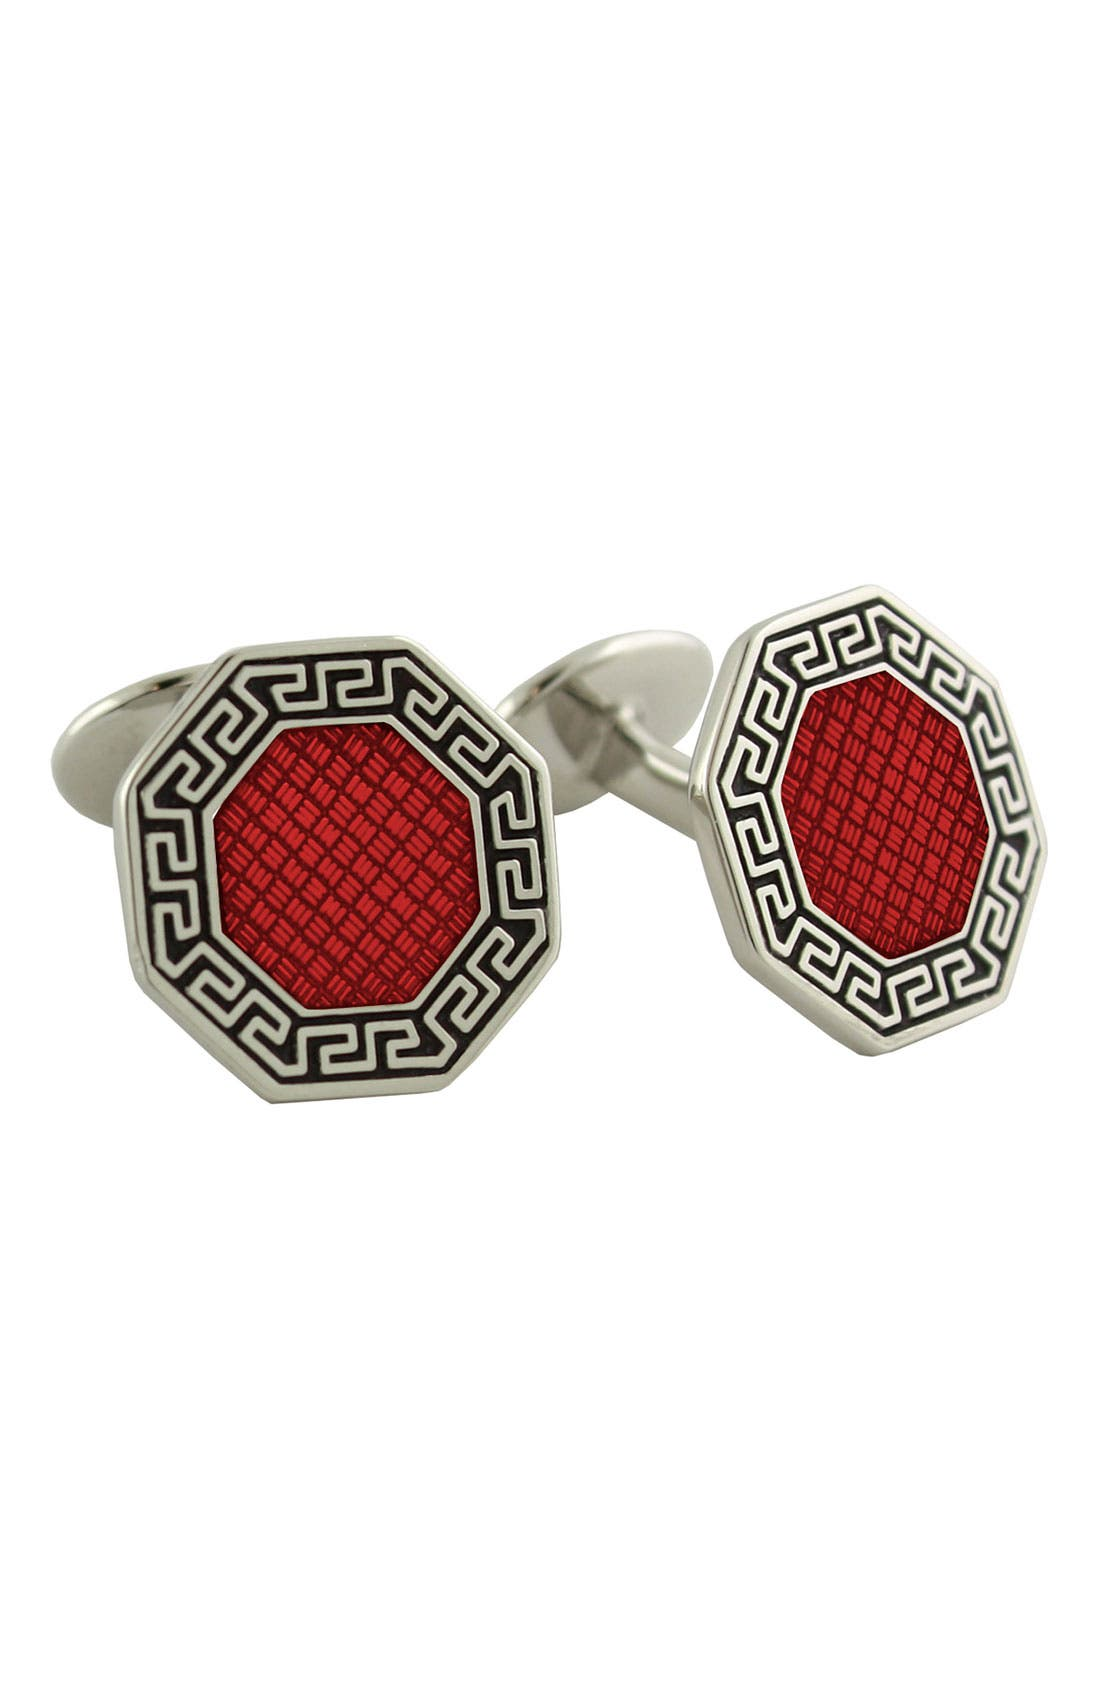 Alternate Image 1 Selected - David Donahue 'Wine' Octagonal Sterling Silver Cuff Links